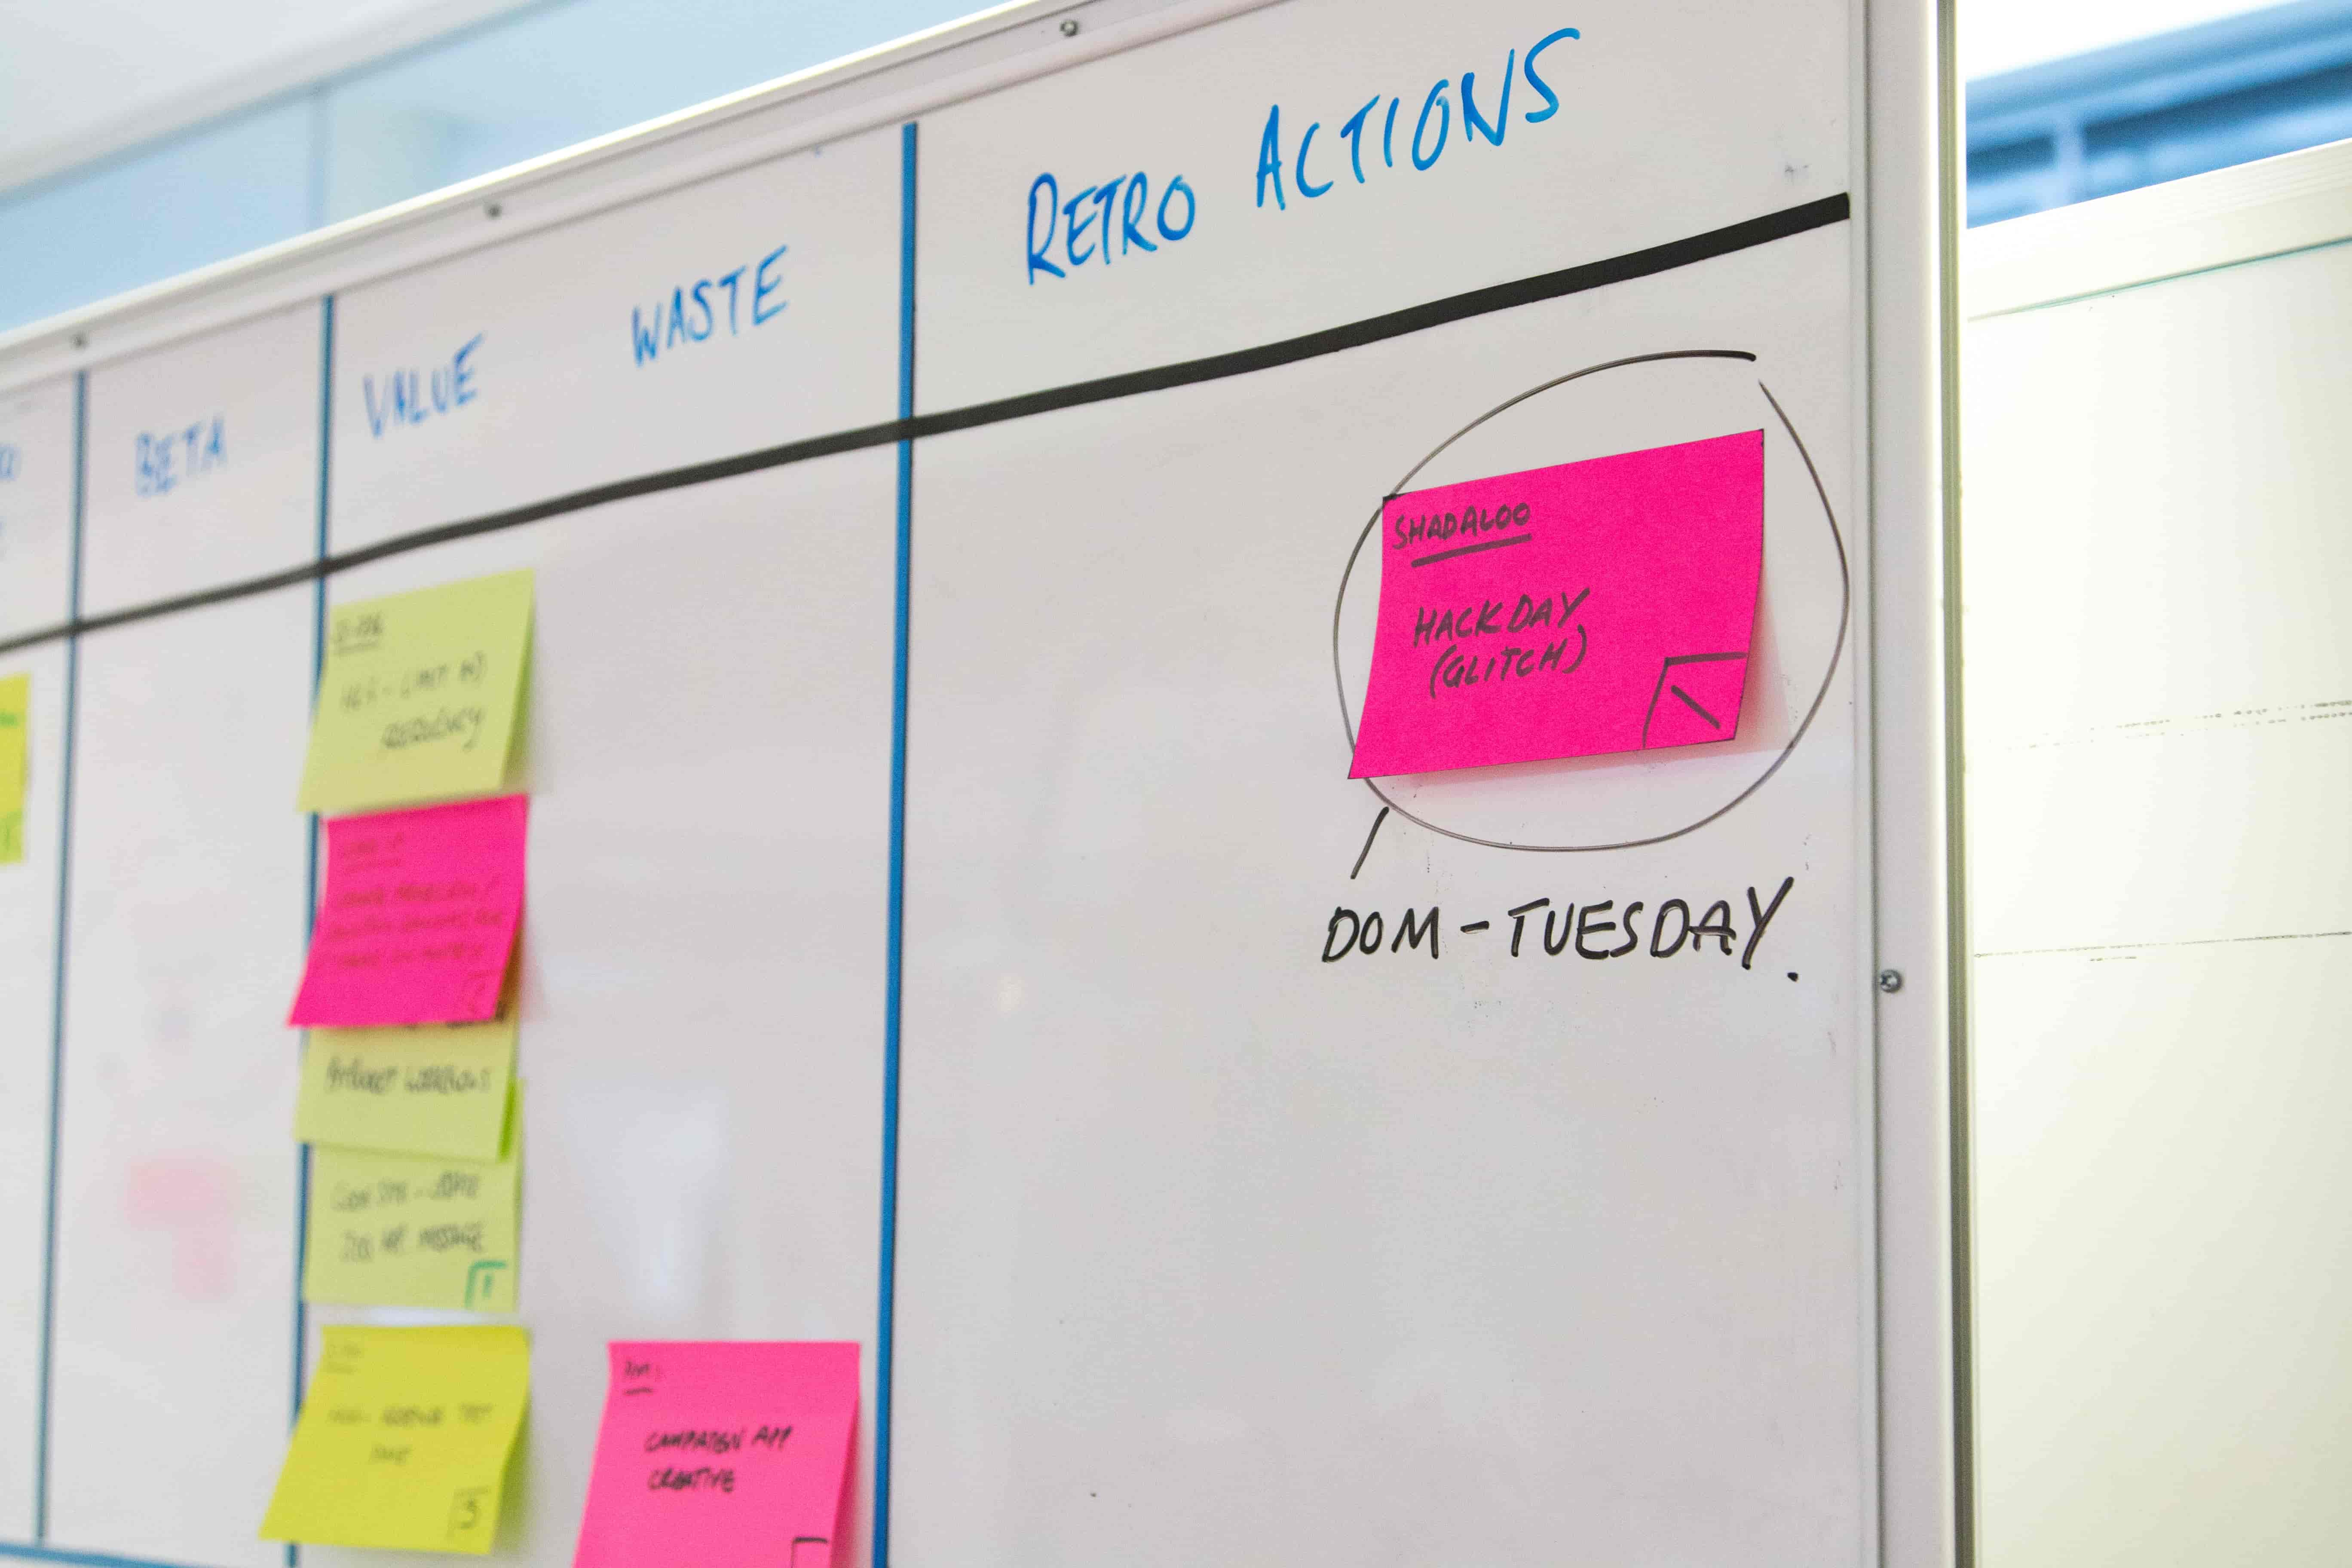 3 Things We Learned From Our First 'Hack Day'